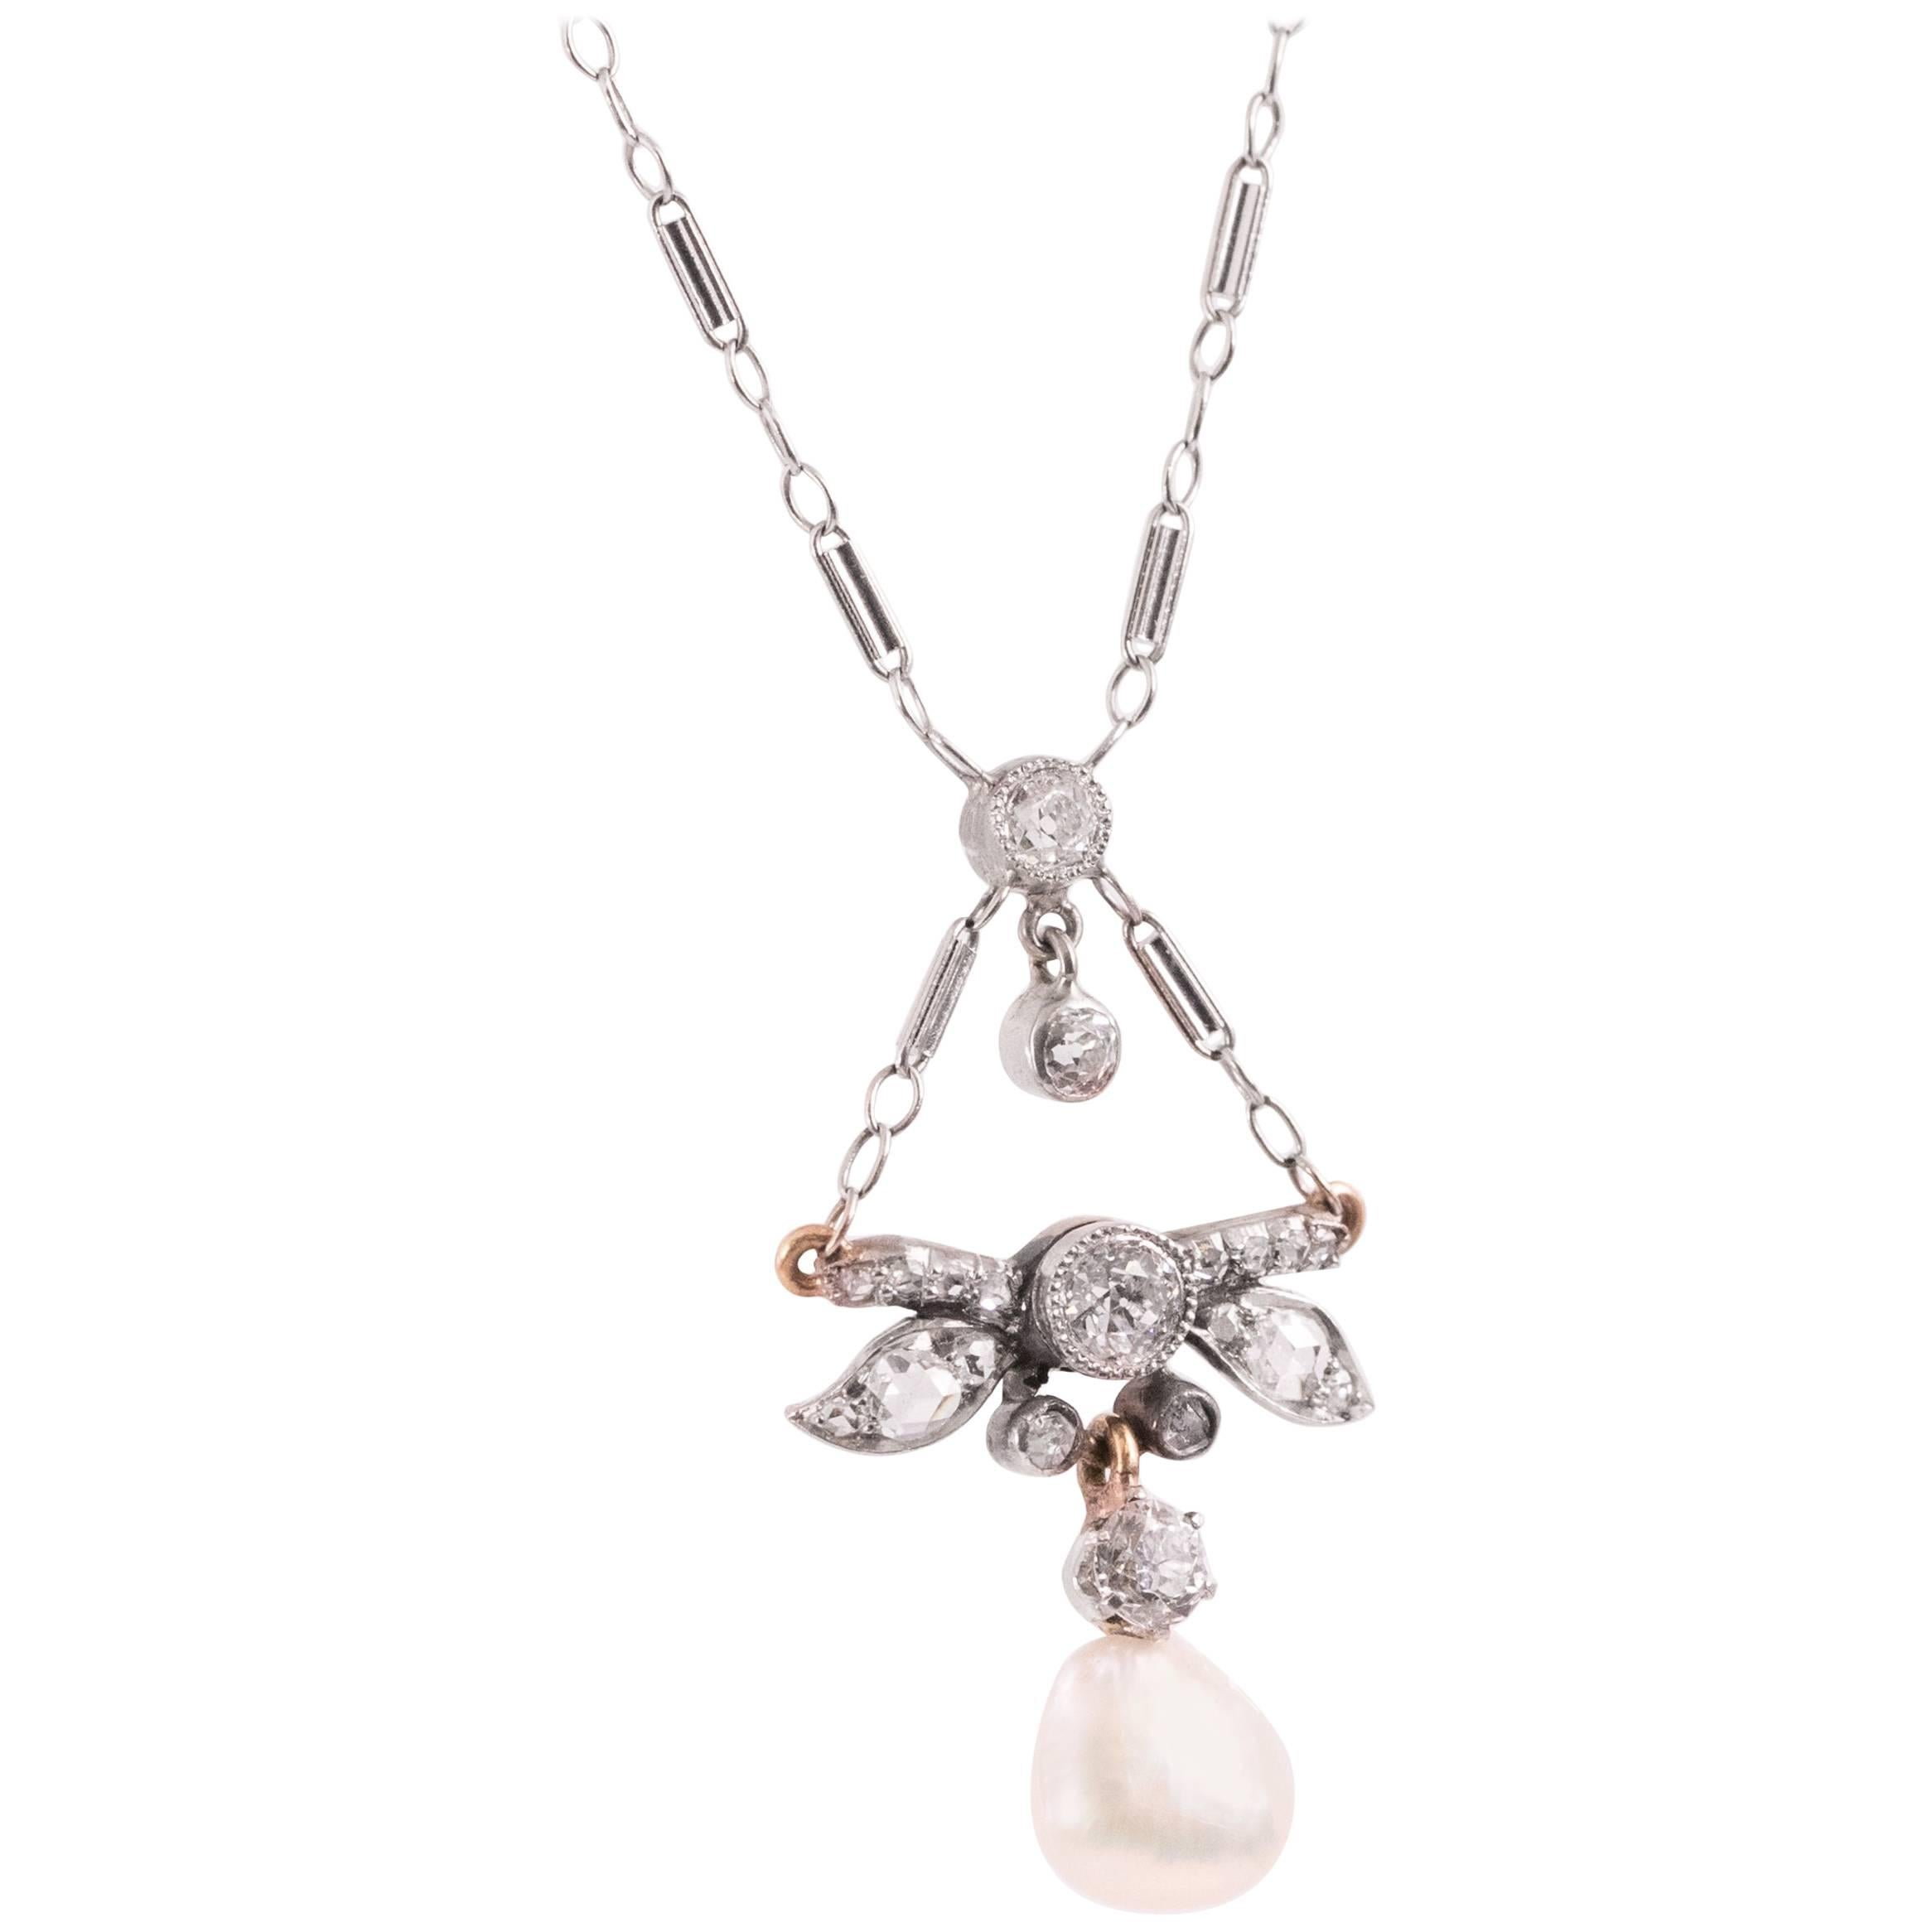 1870s Victorian 1.00 Carat Diamond and Pearl 14 Karat White Gold Necklace